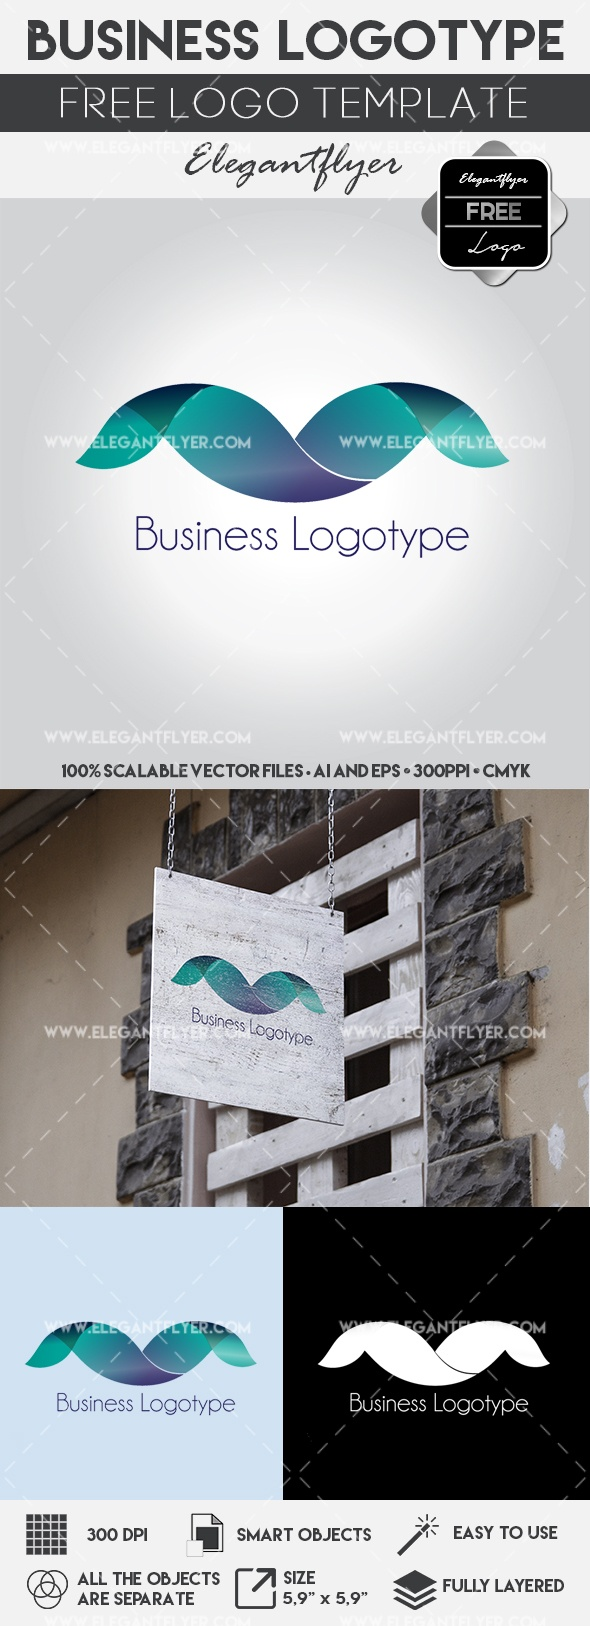 Template for Business Continuity Logo